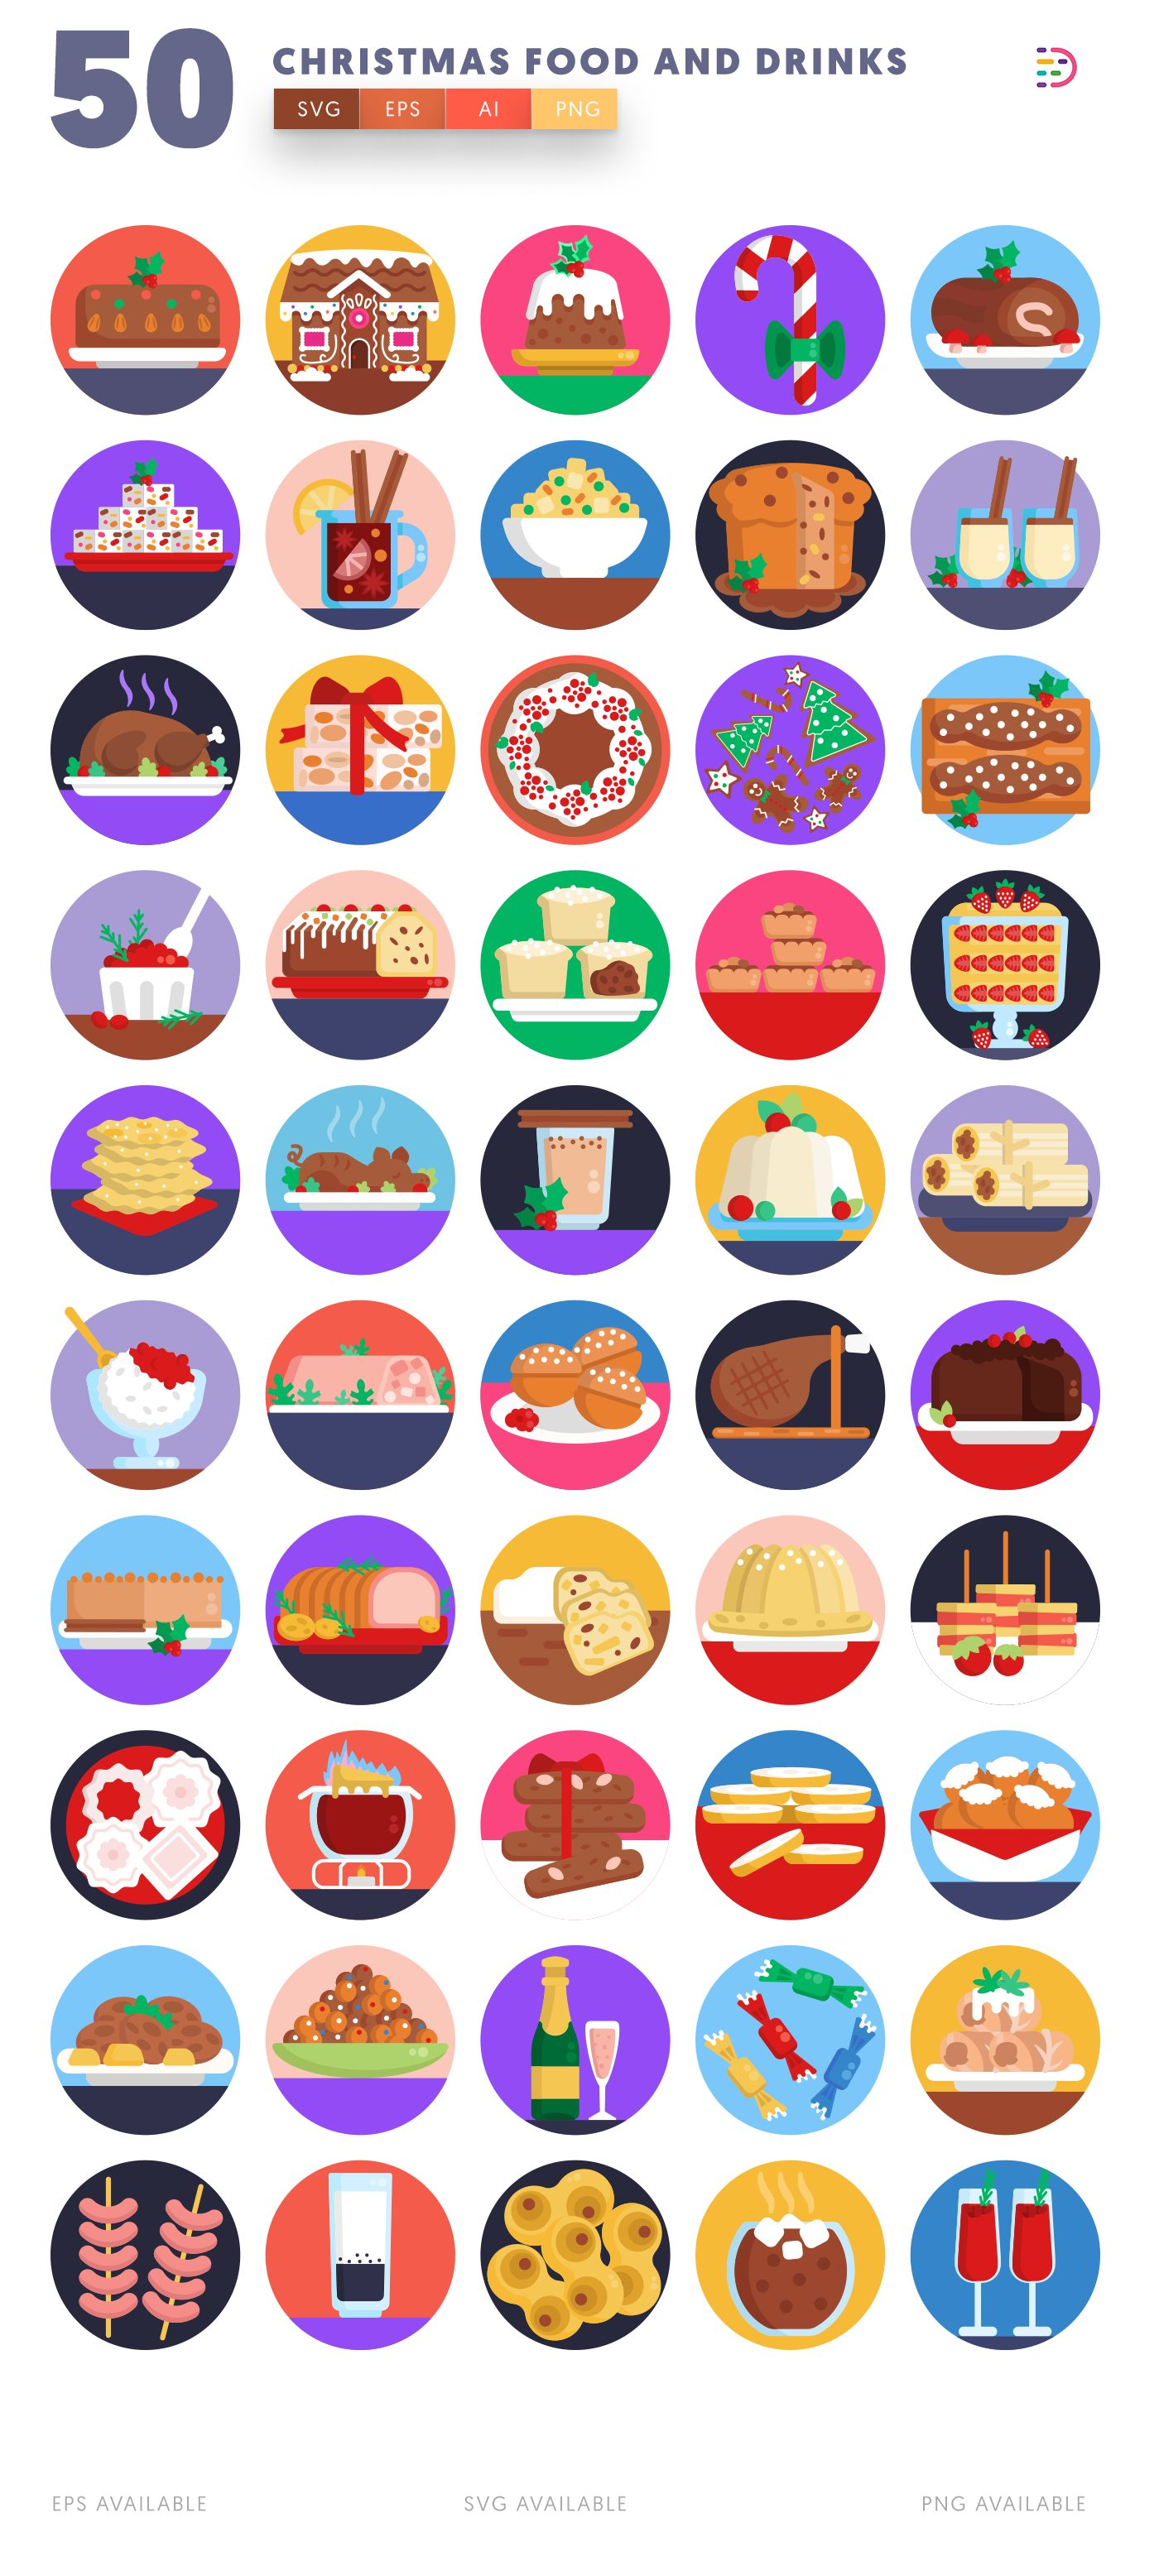 Christmas Food and Drinks icon pack